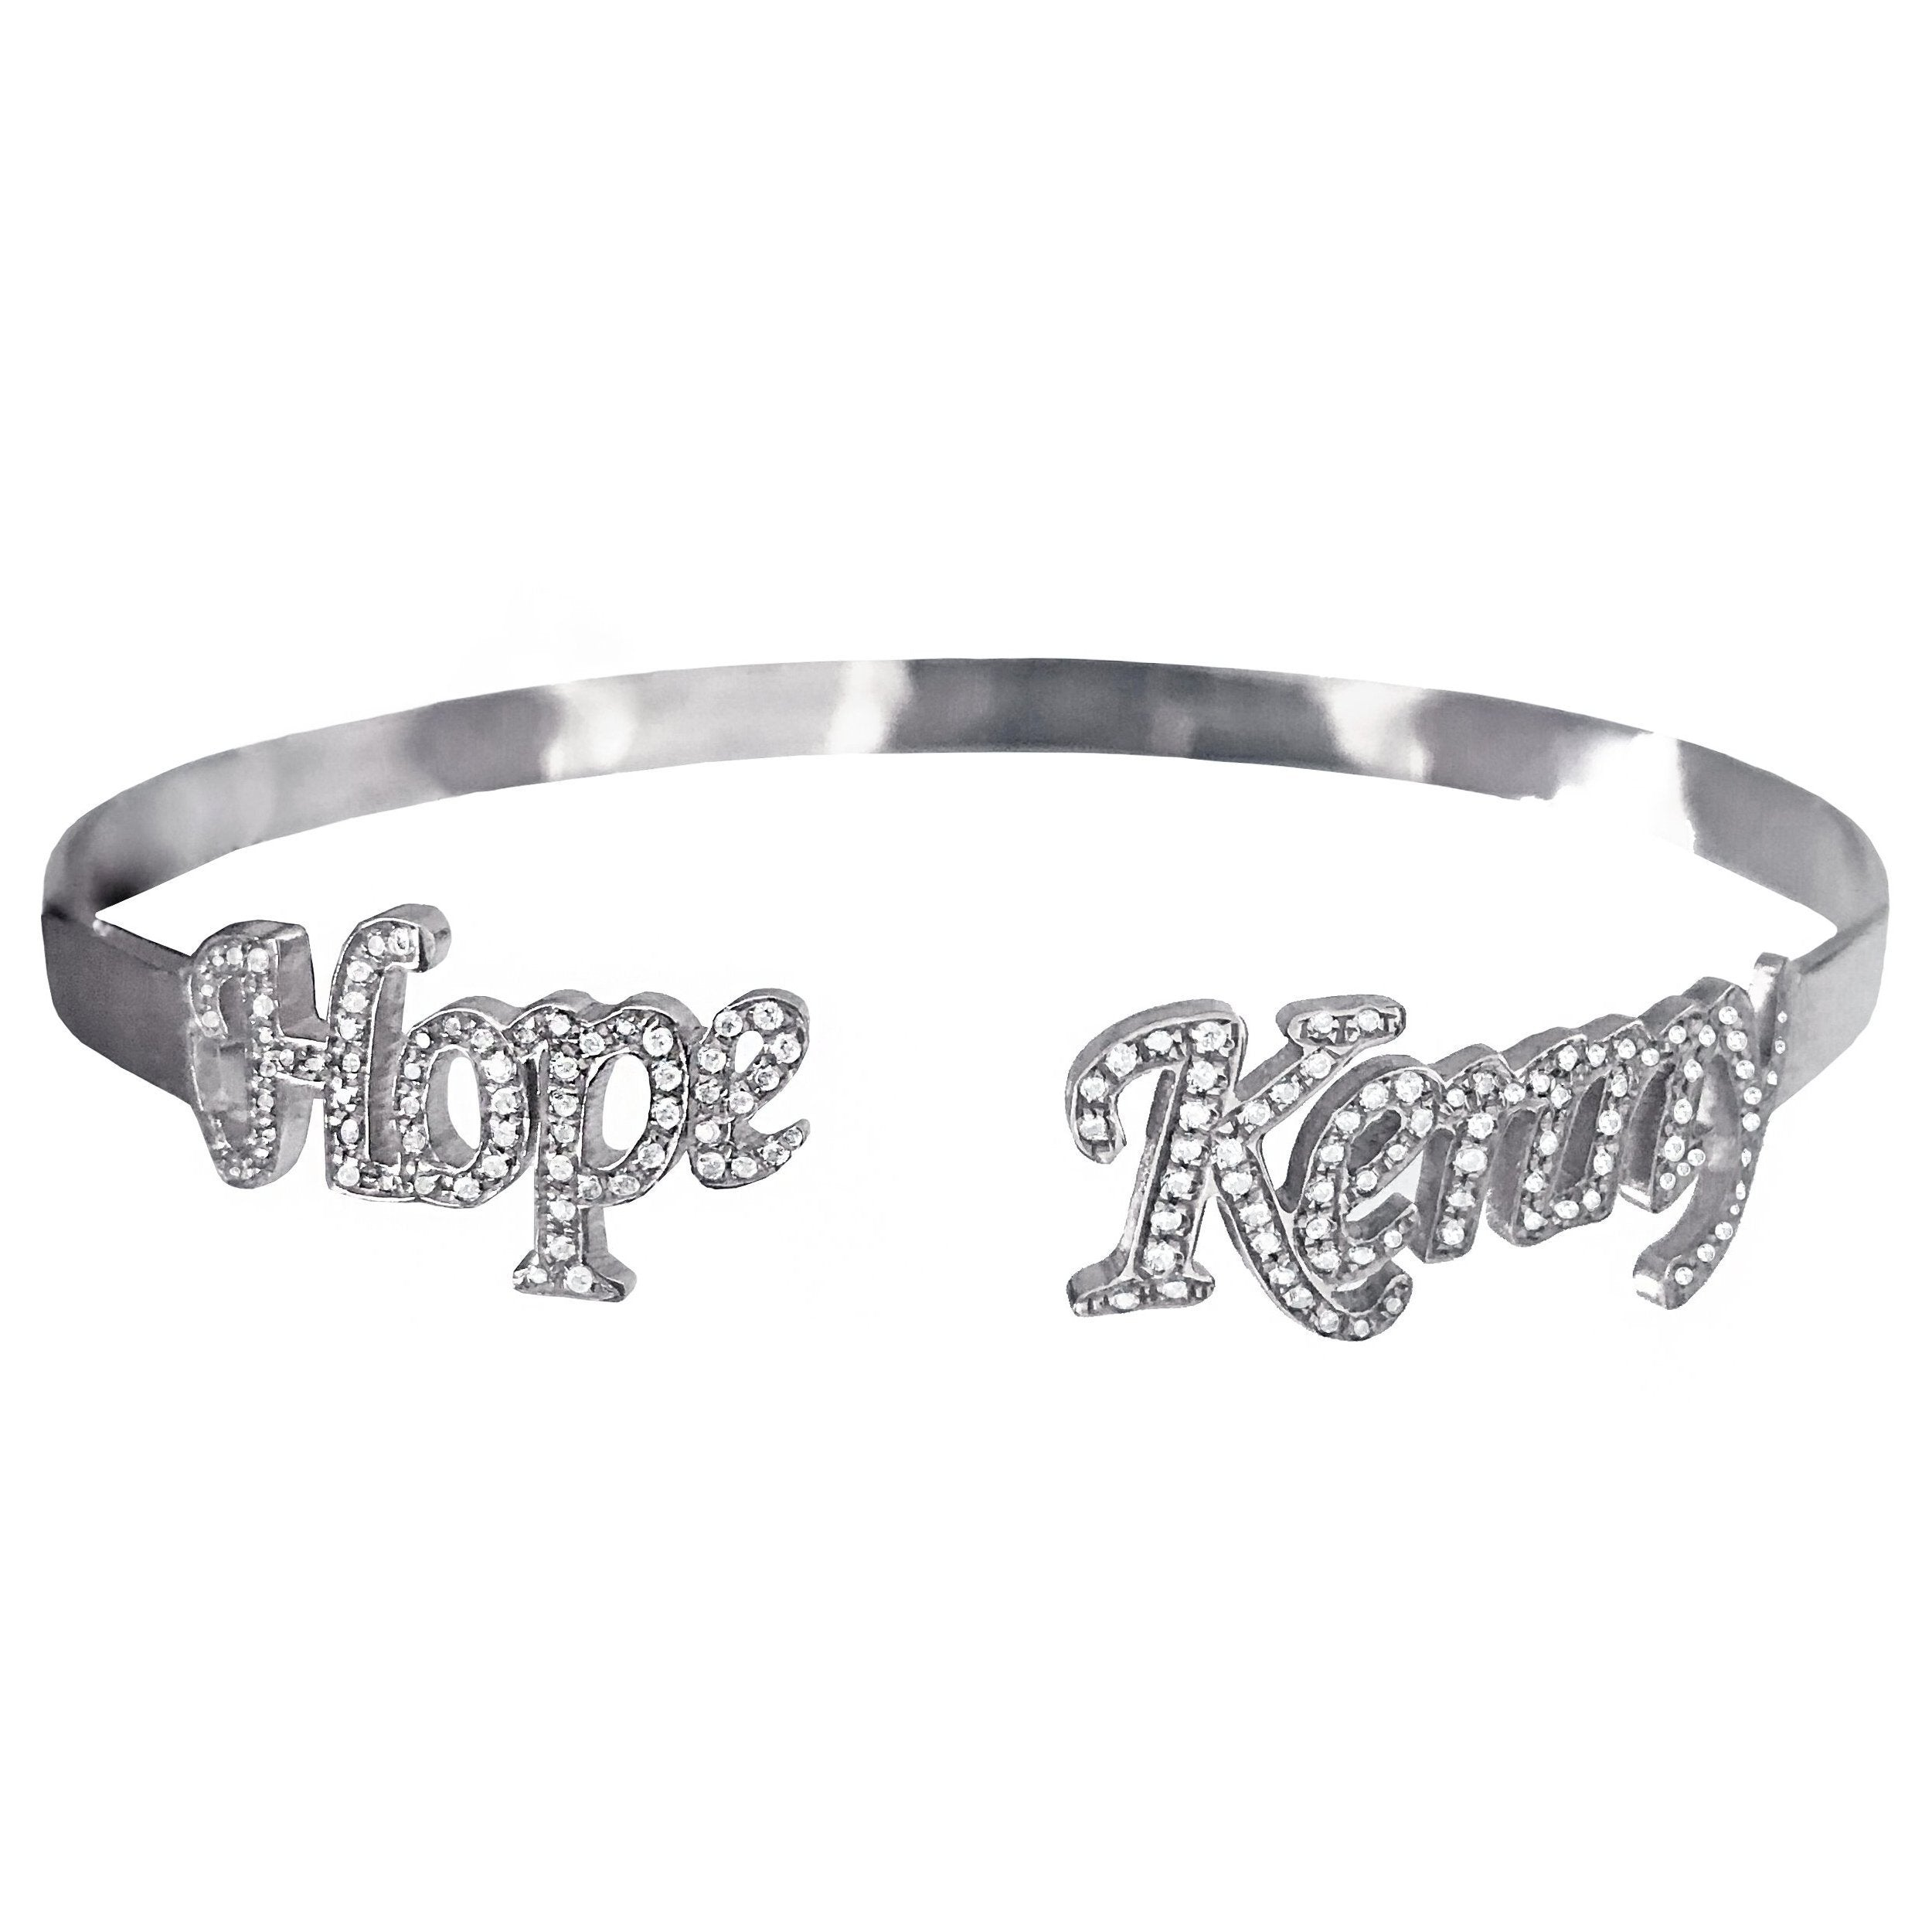 DOUBLE NAME CZ BANGLE